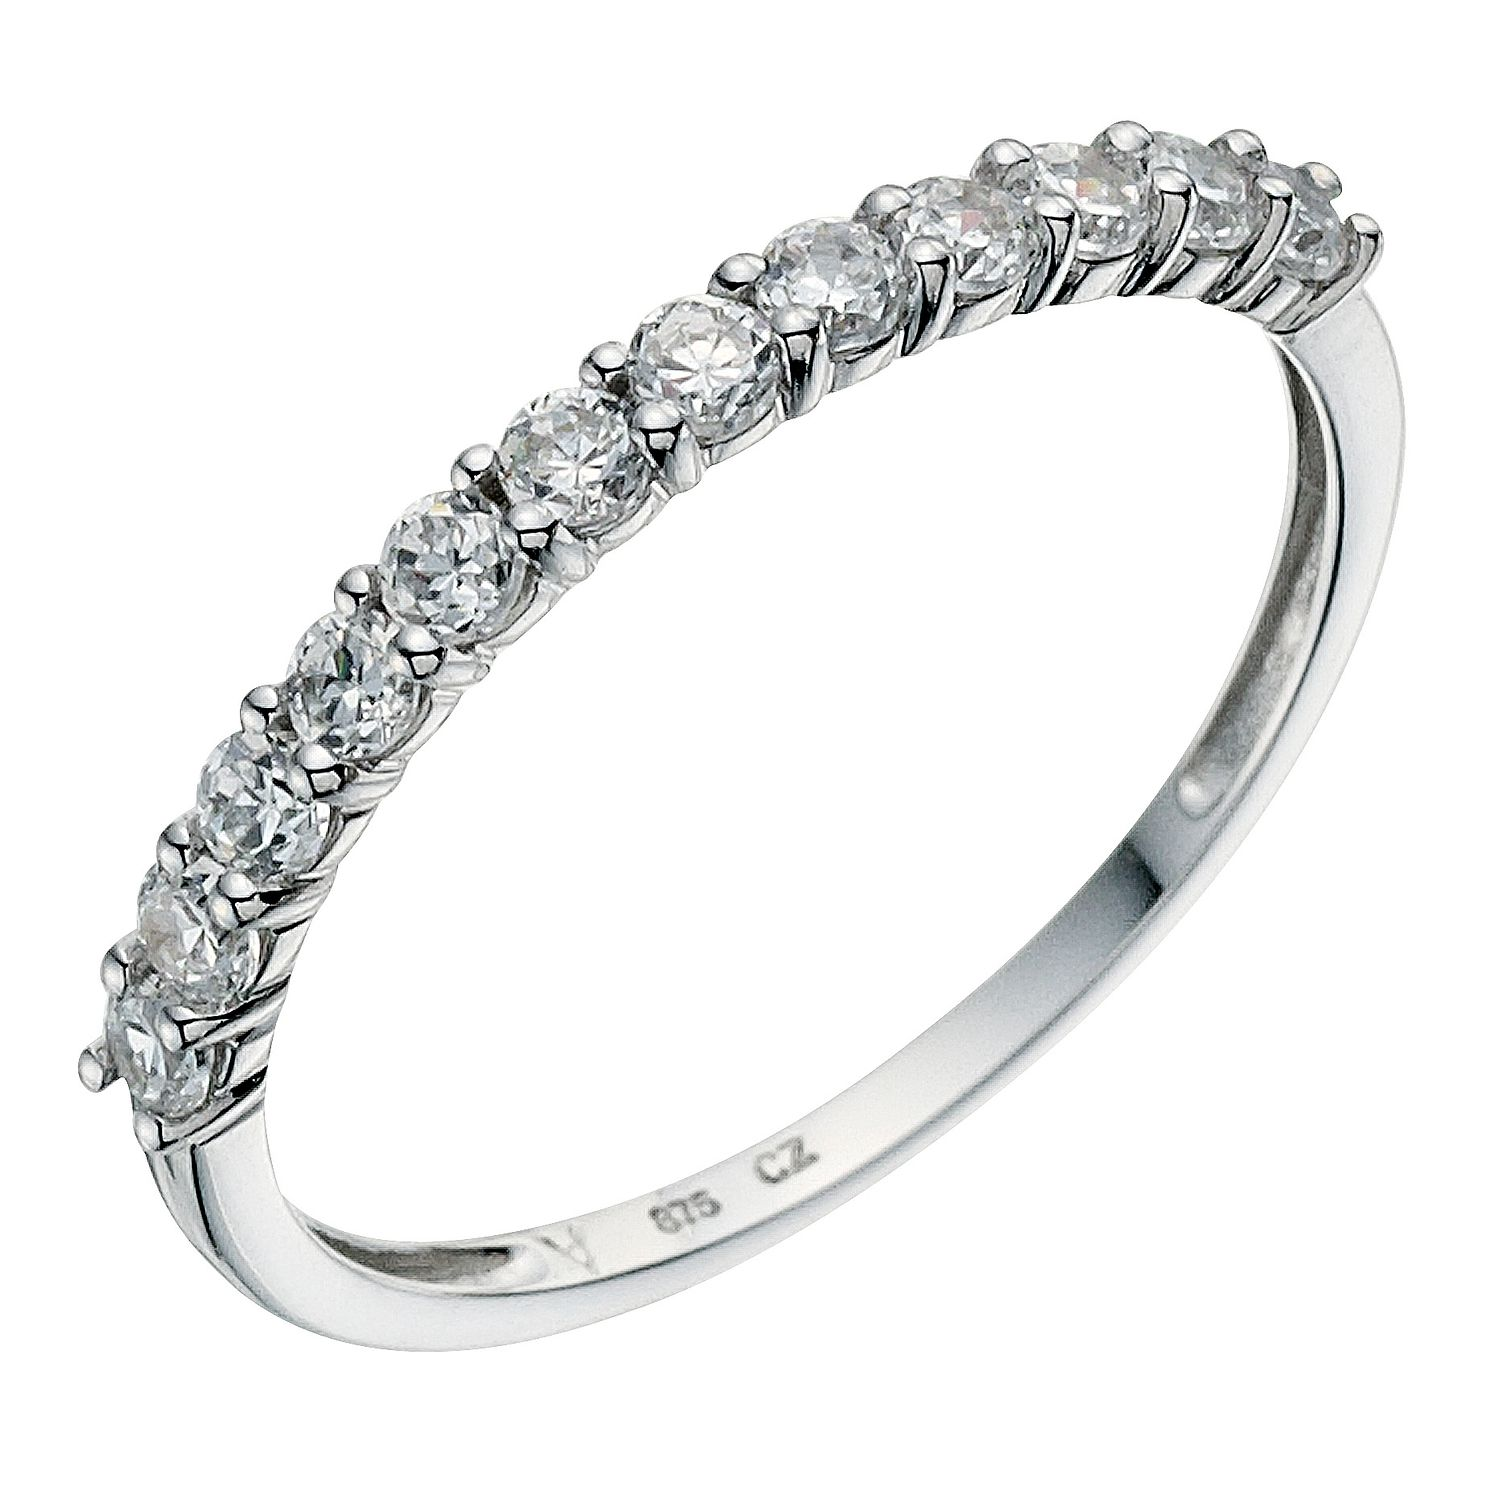 bands yellow gold eternity wedding for graff round diamond a brilliant pave band cut set with diamonds collections her in